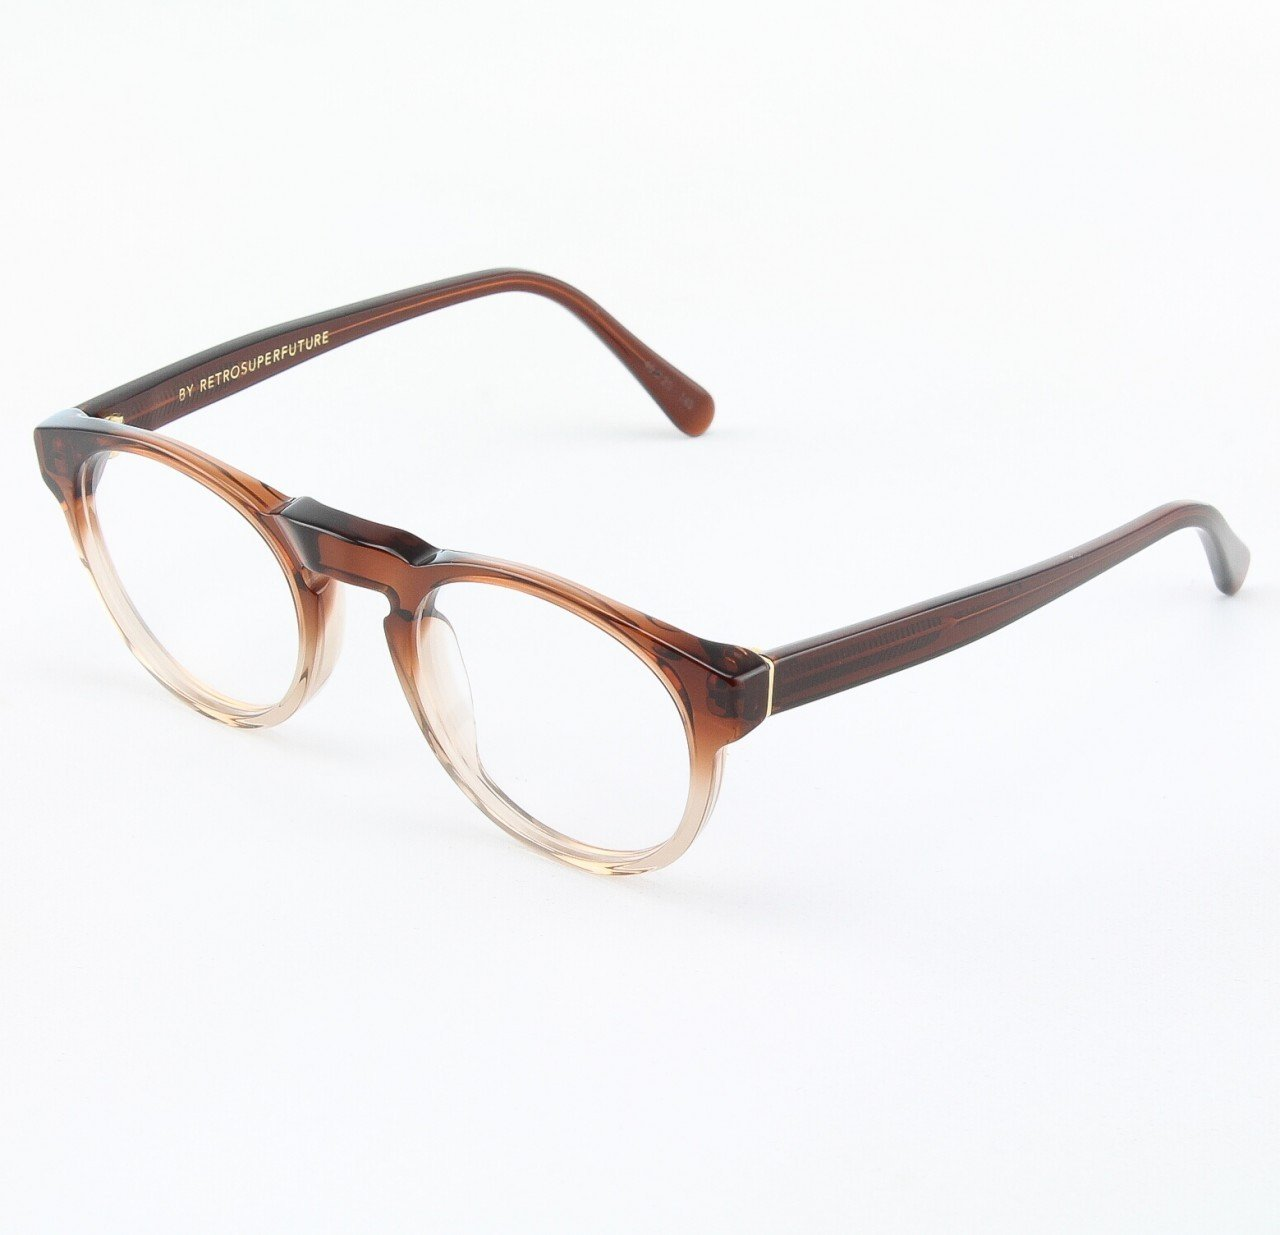 Super Paloma 820/0T Eyeglasses Brown Crystal with Clear Zeiss Lenses by RETROSUPERFUTURE